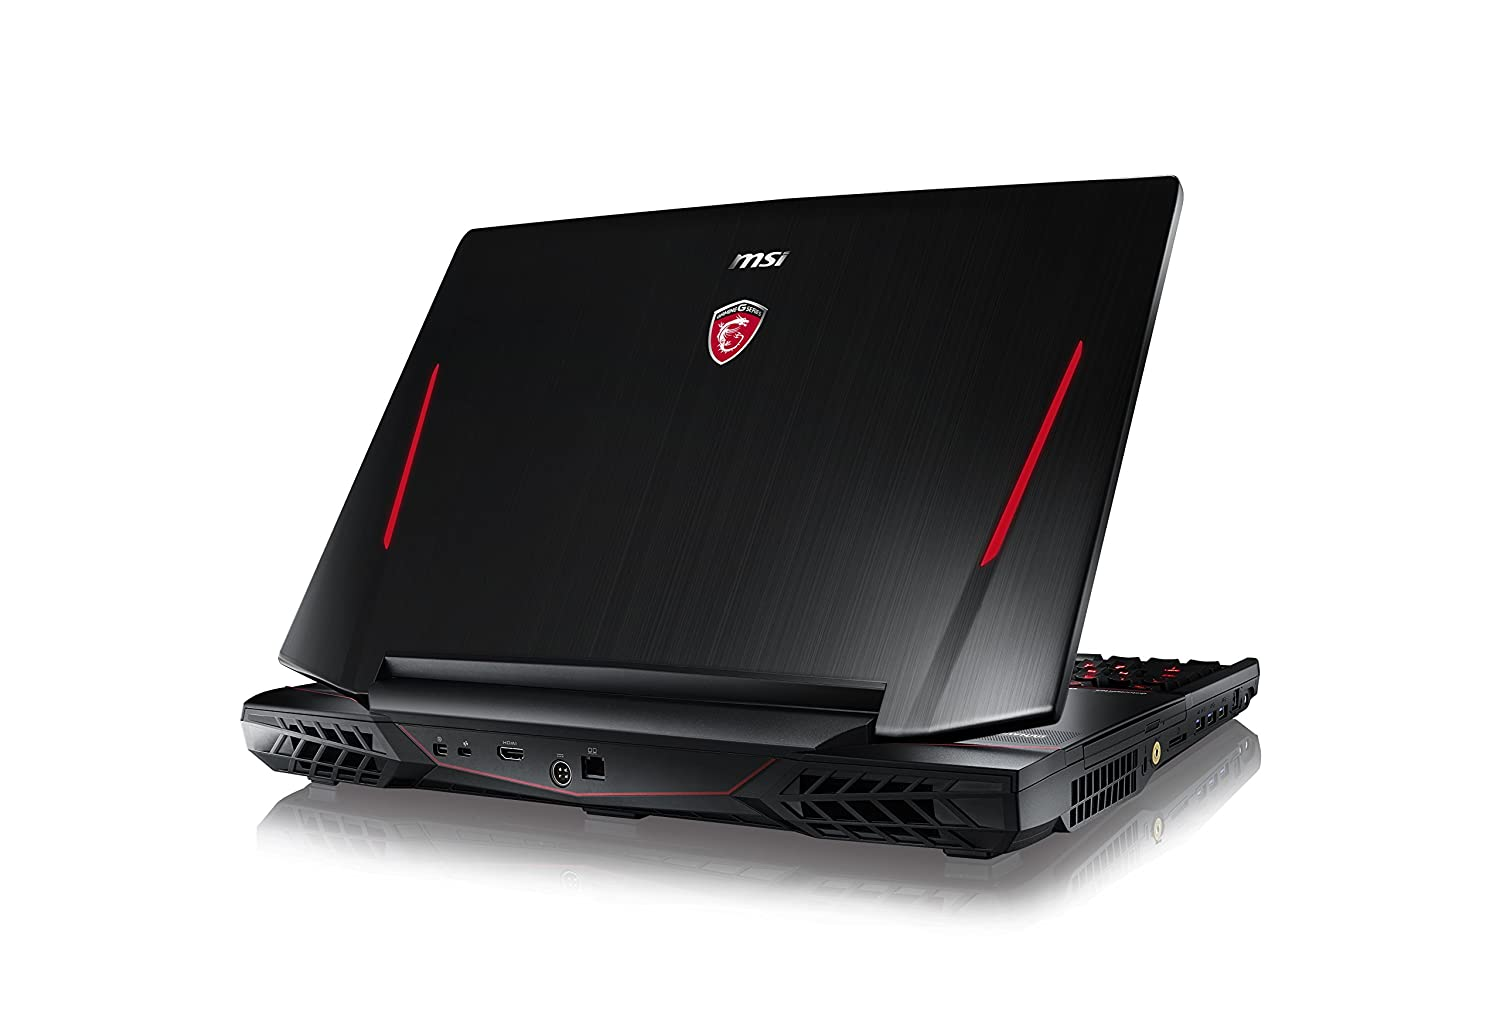 MSI GT80S 6QE Titan SLI Heroes SE Rivet Networks Killer WLAN Drivers for Windows Mac